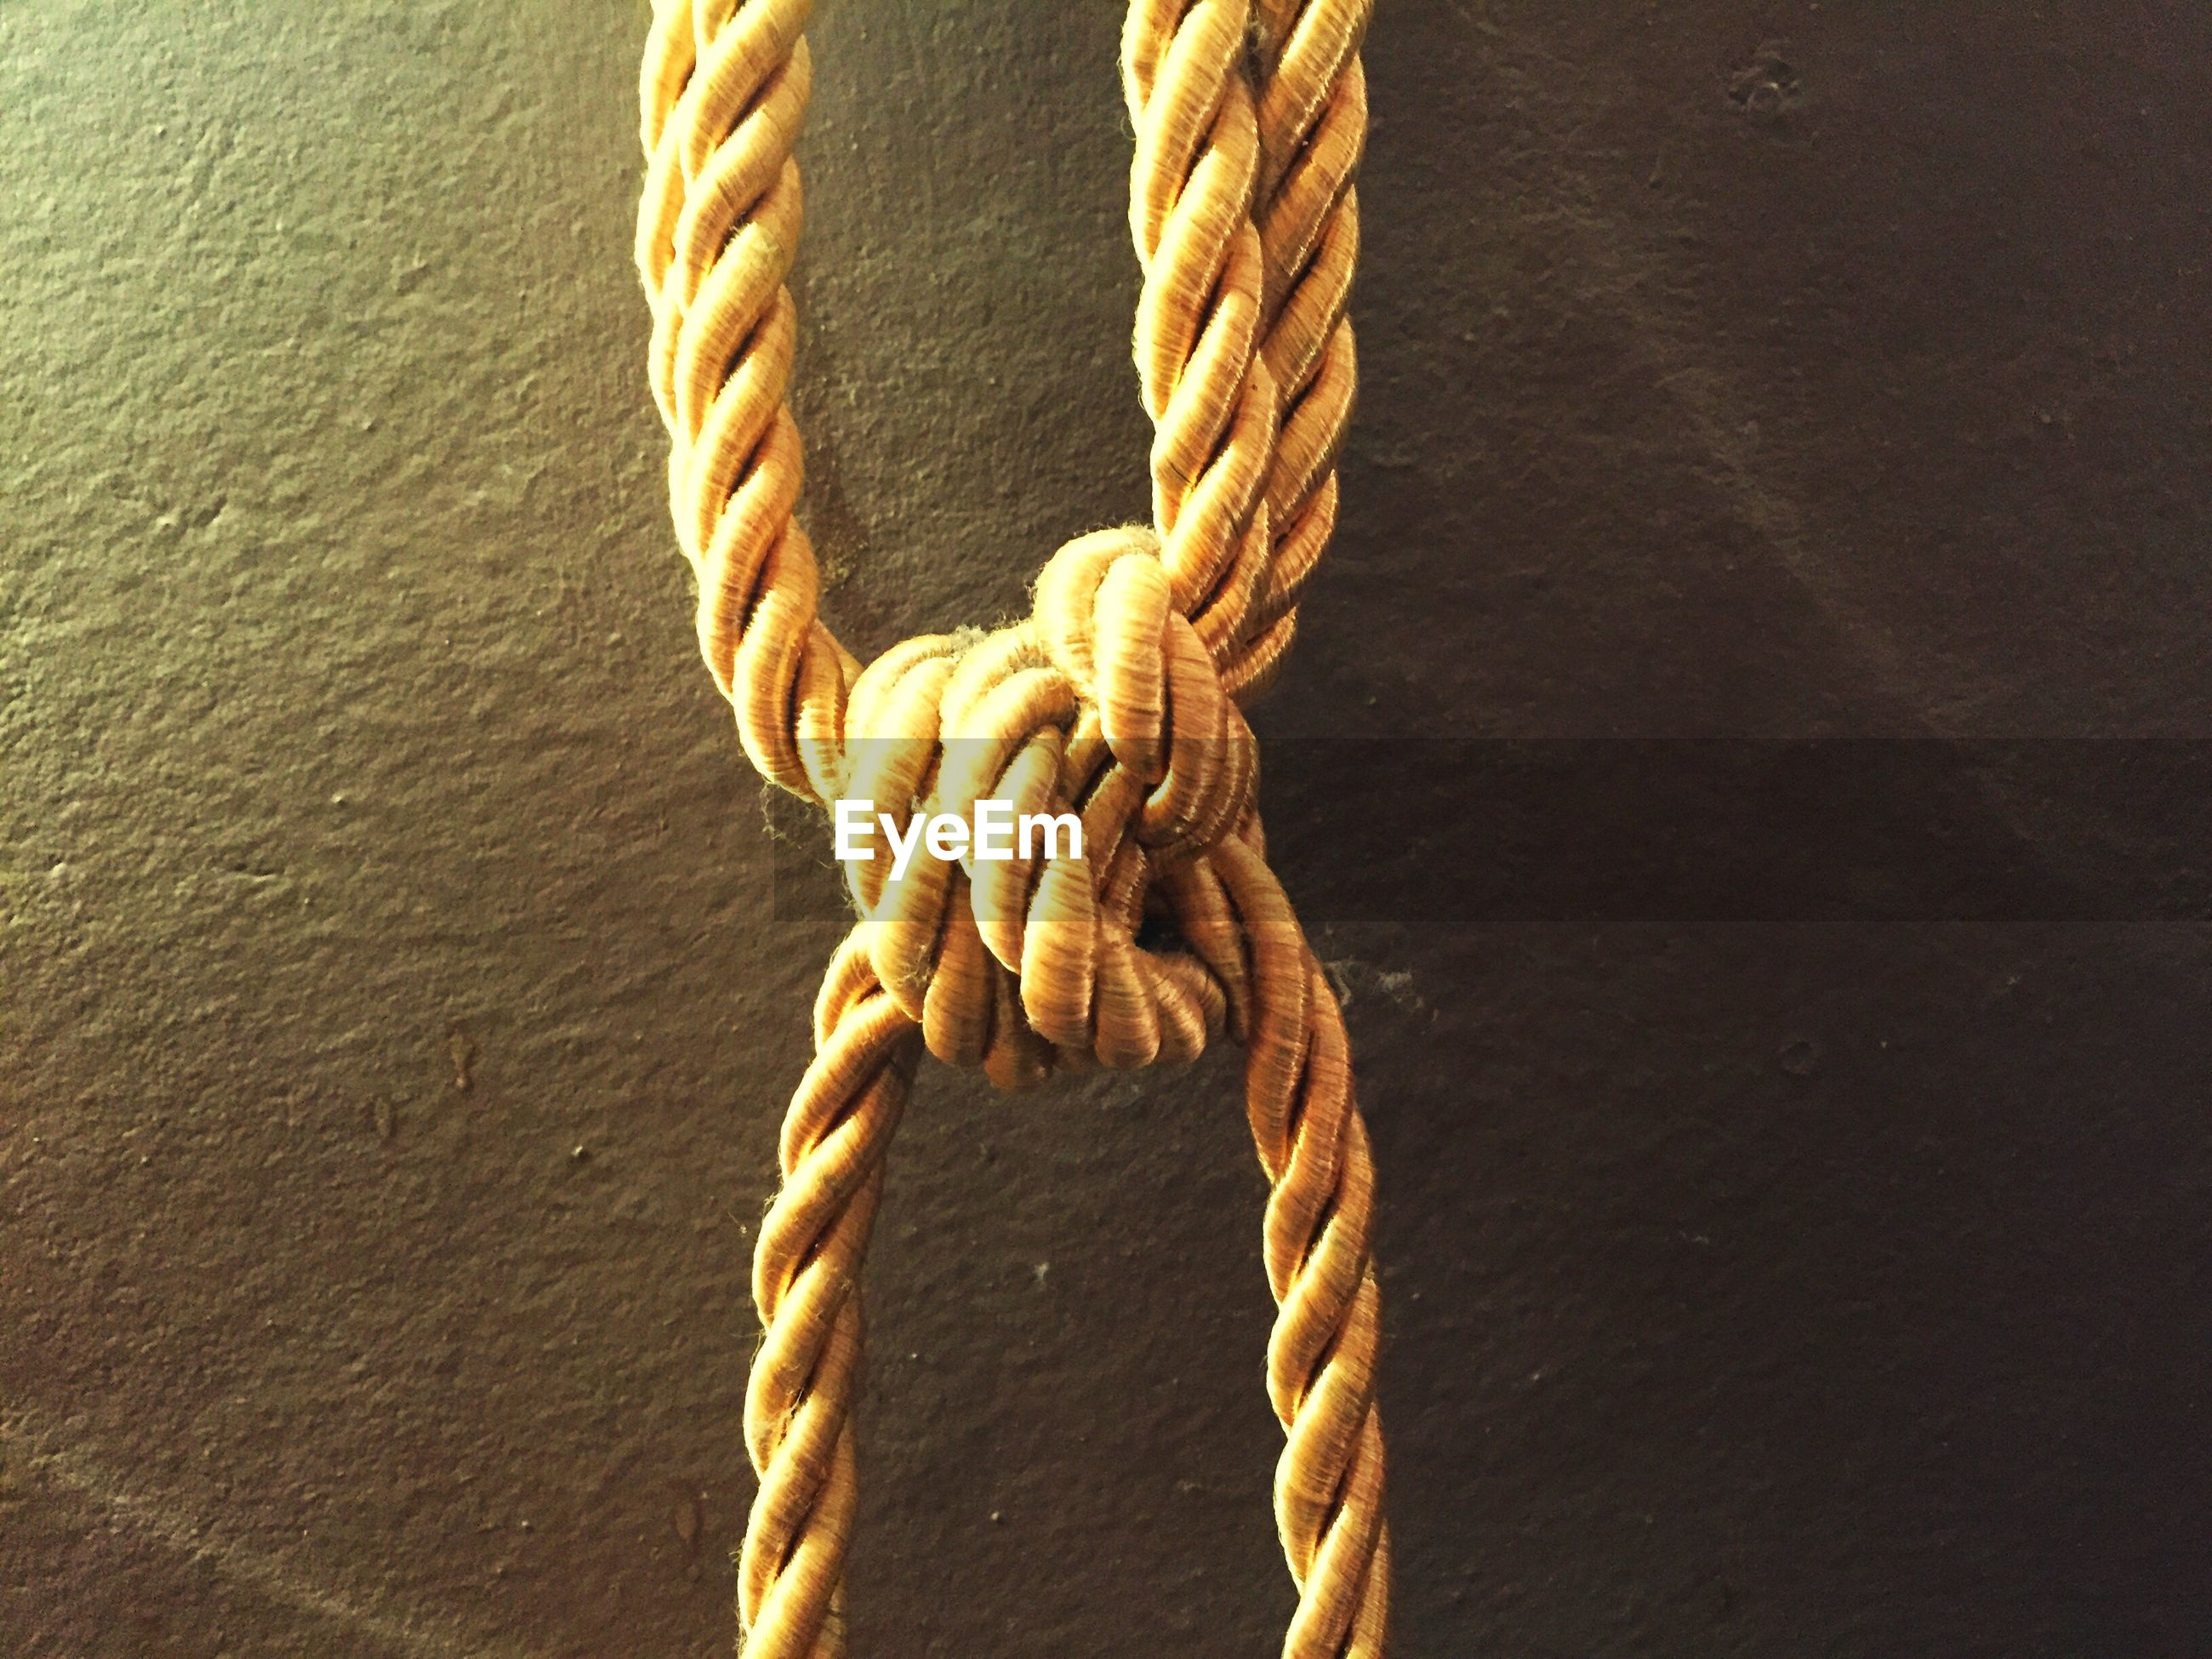 Close-up of ropes tied against wall